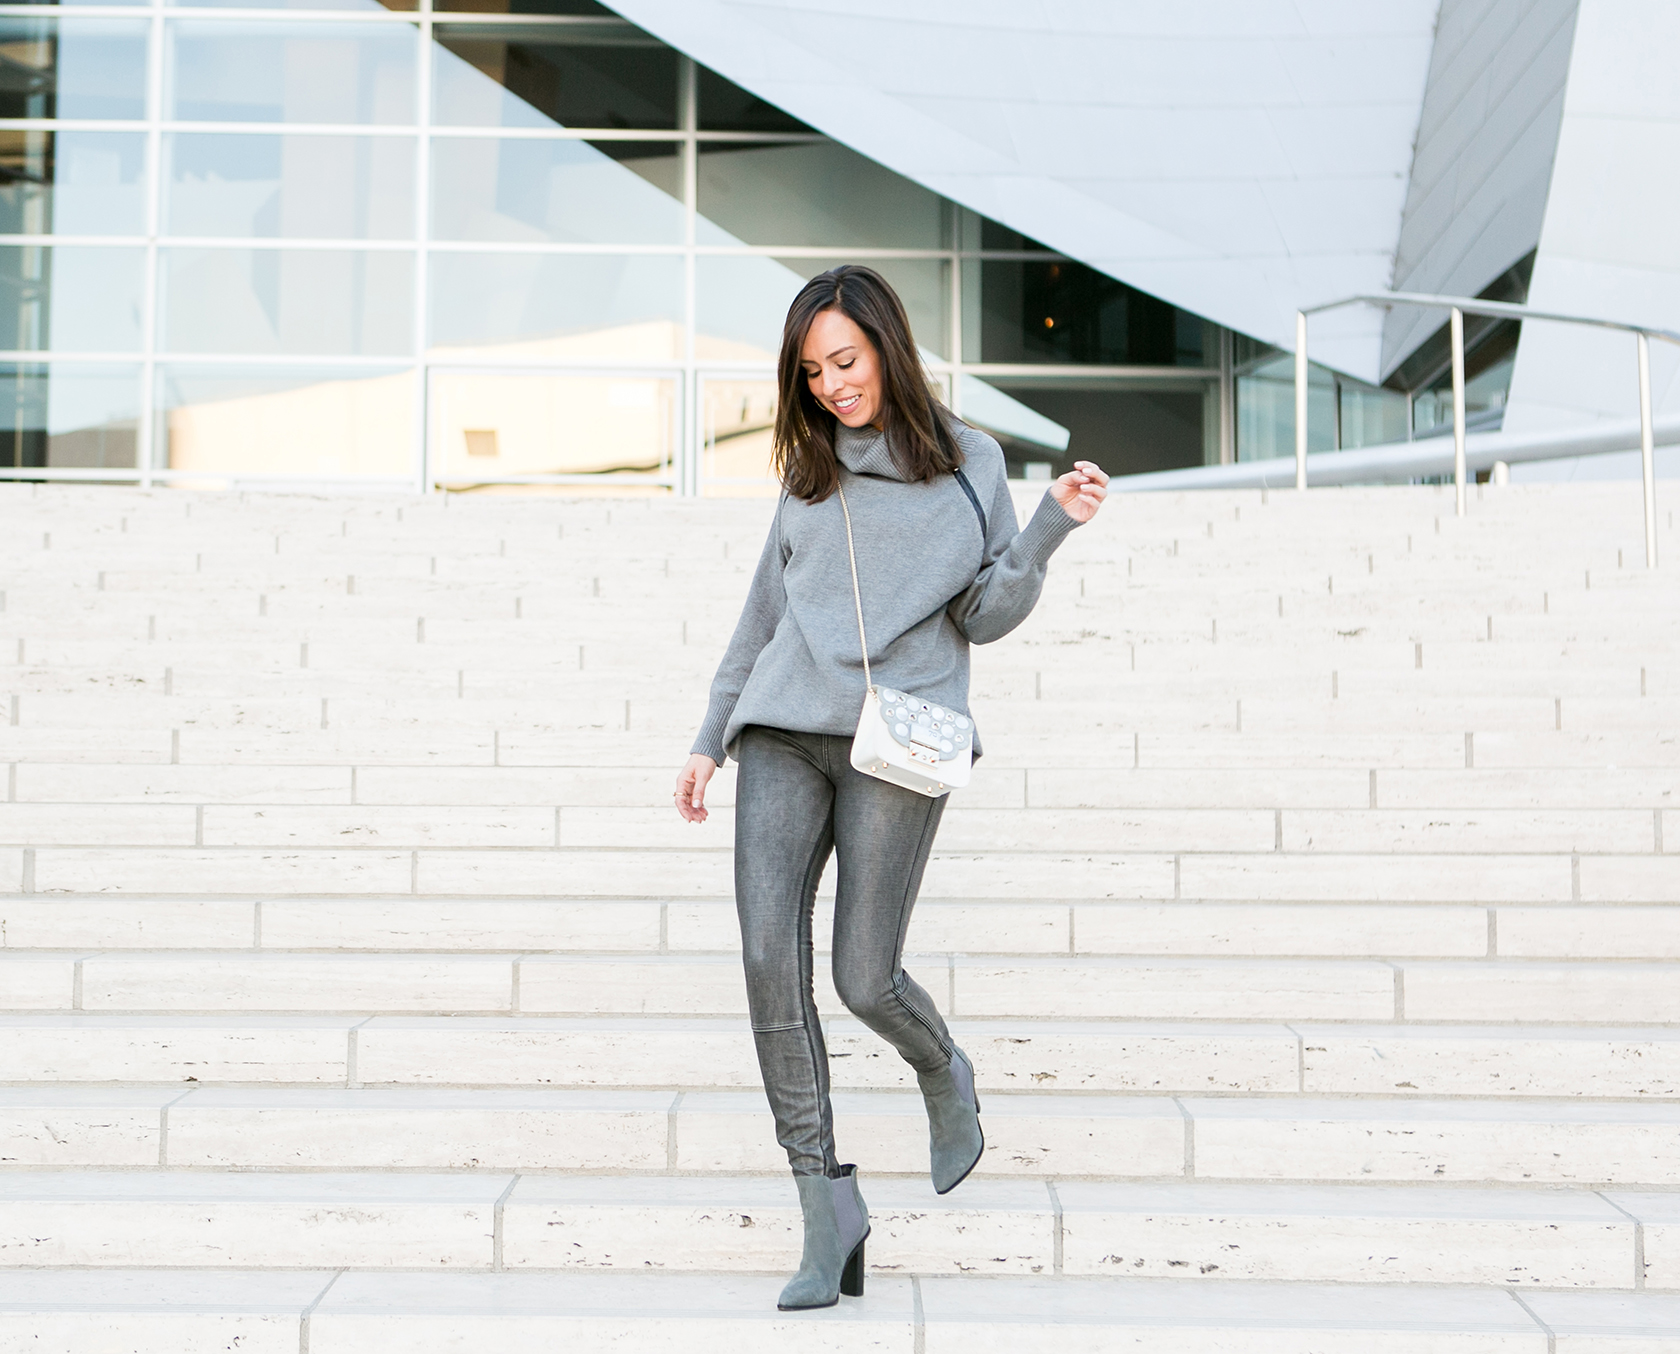 Leggings Outfit Party Turtleneck Sweater Dress Day To Night Fashion Trends